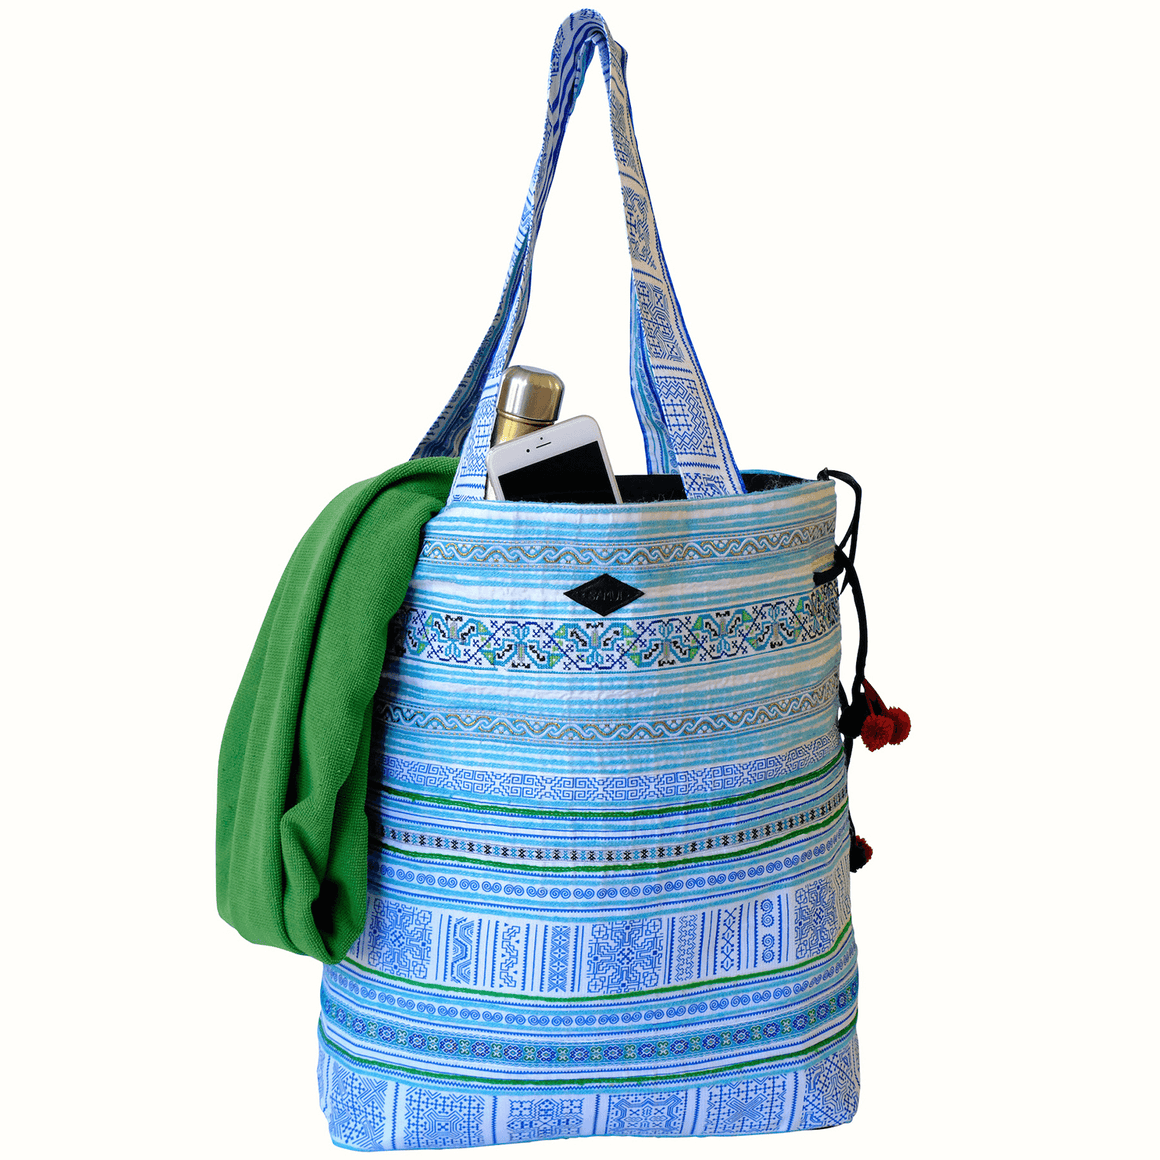 Samui Bags Ocean Breeze Weekender Bag Handmade Thai Bag